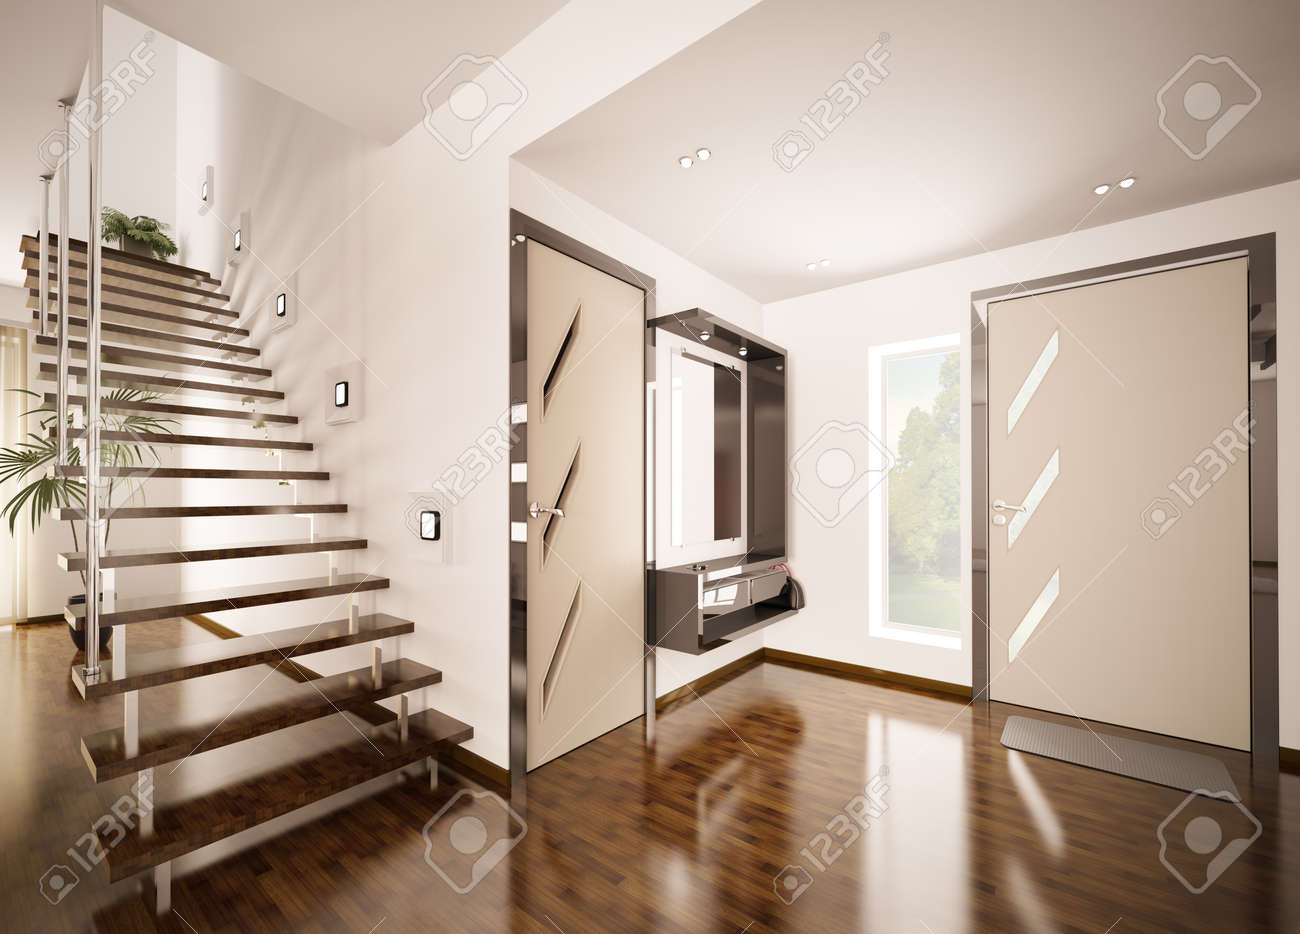 Modern interior of hall with staircase 3d render stock photo